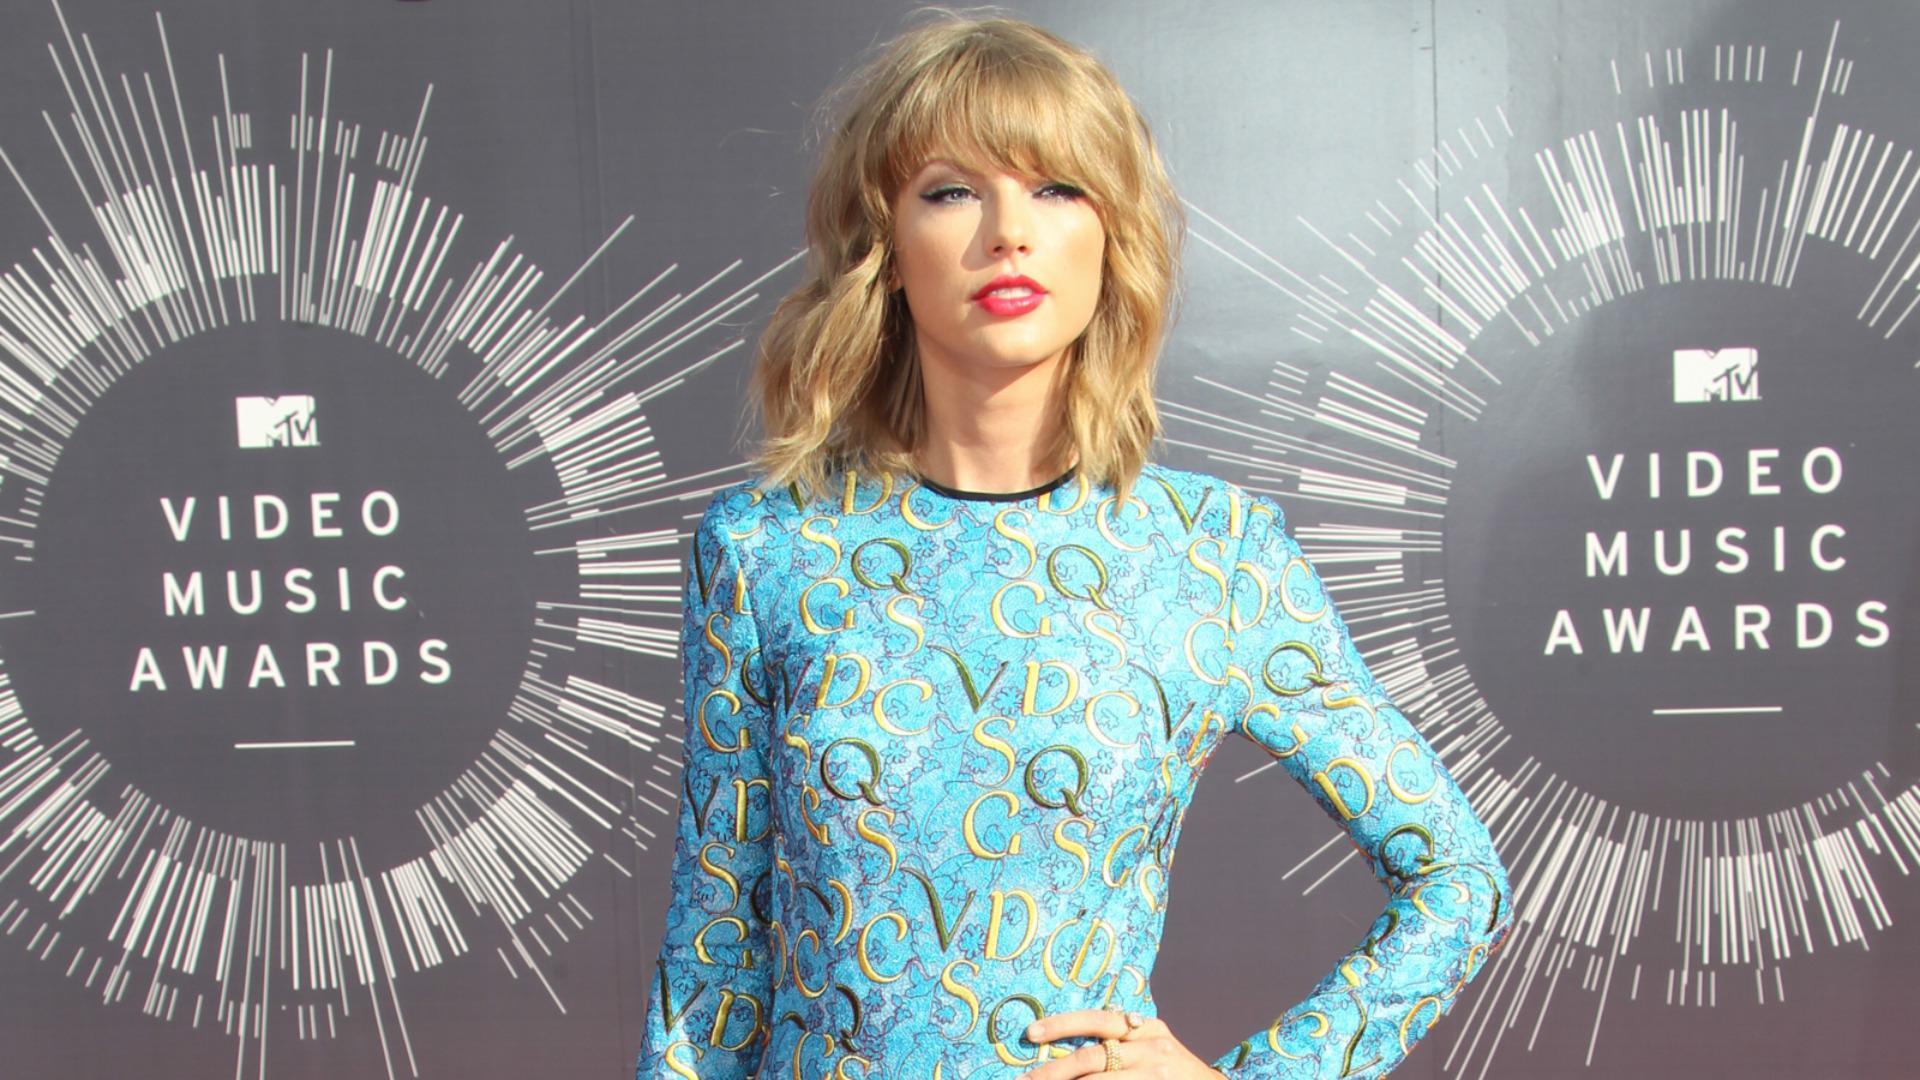 Taylor Swift says Lena Dunham educated her about feminism